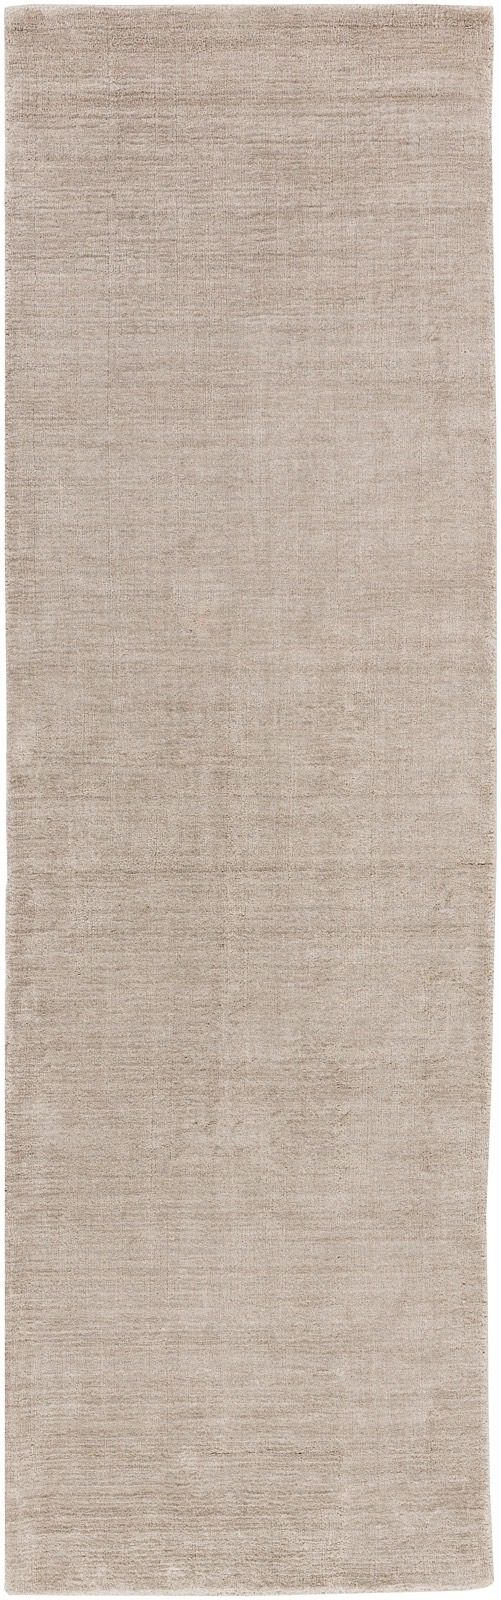 surya linen solid/striped area rug collection